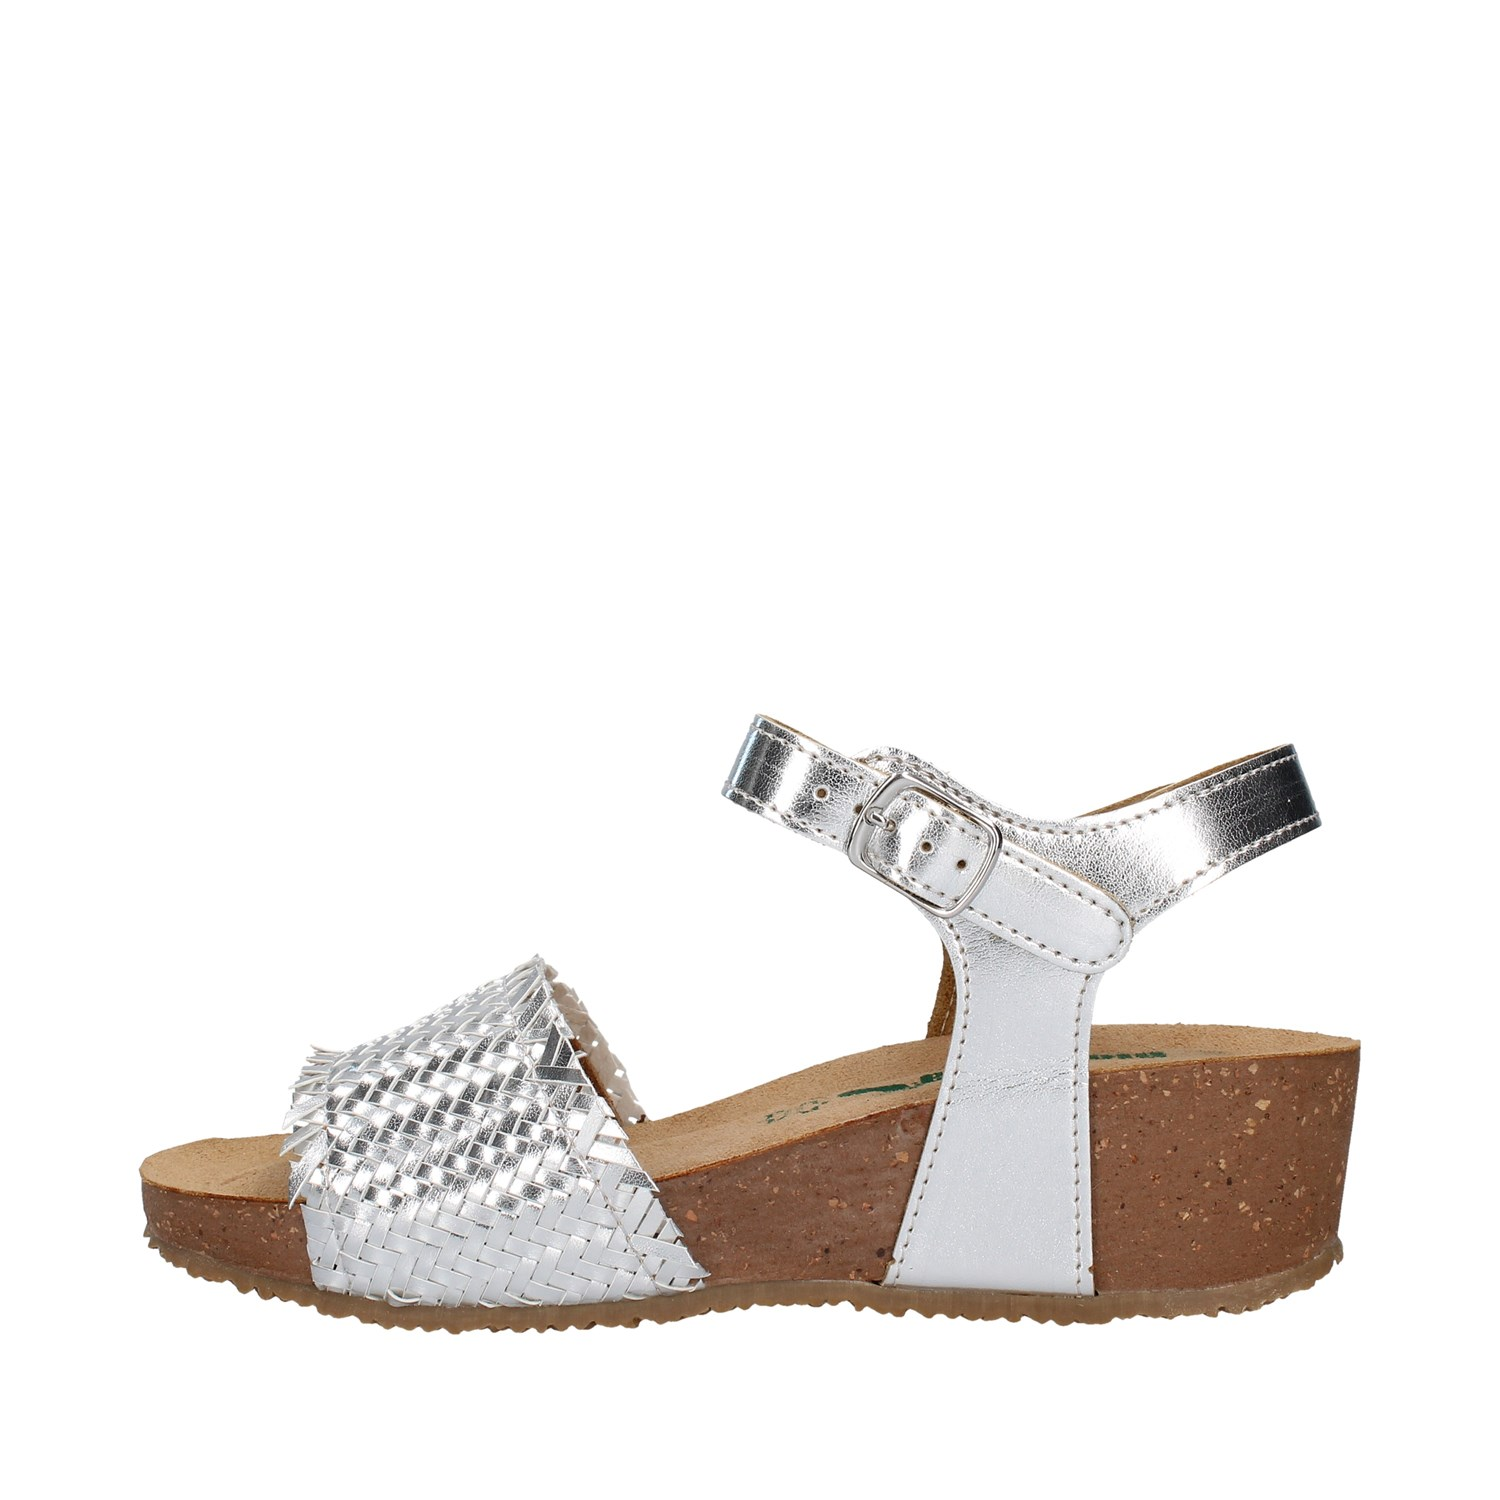 Bionatura Shoes Woman With wedge SILVER 28A257I